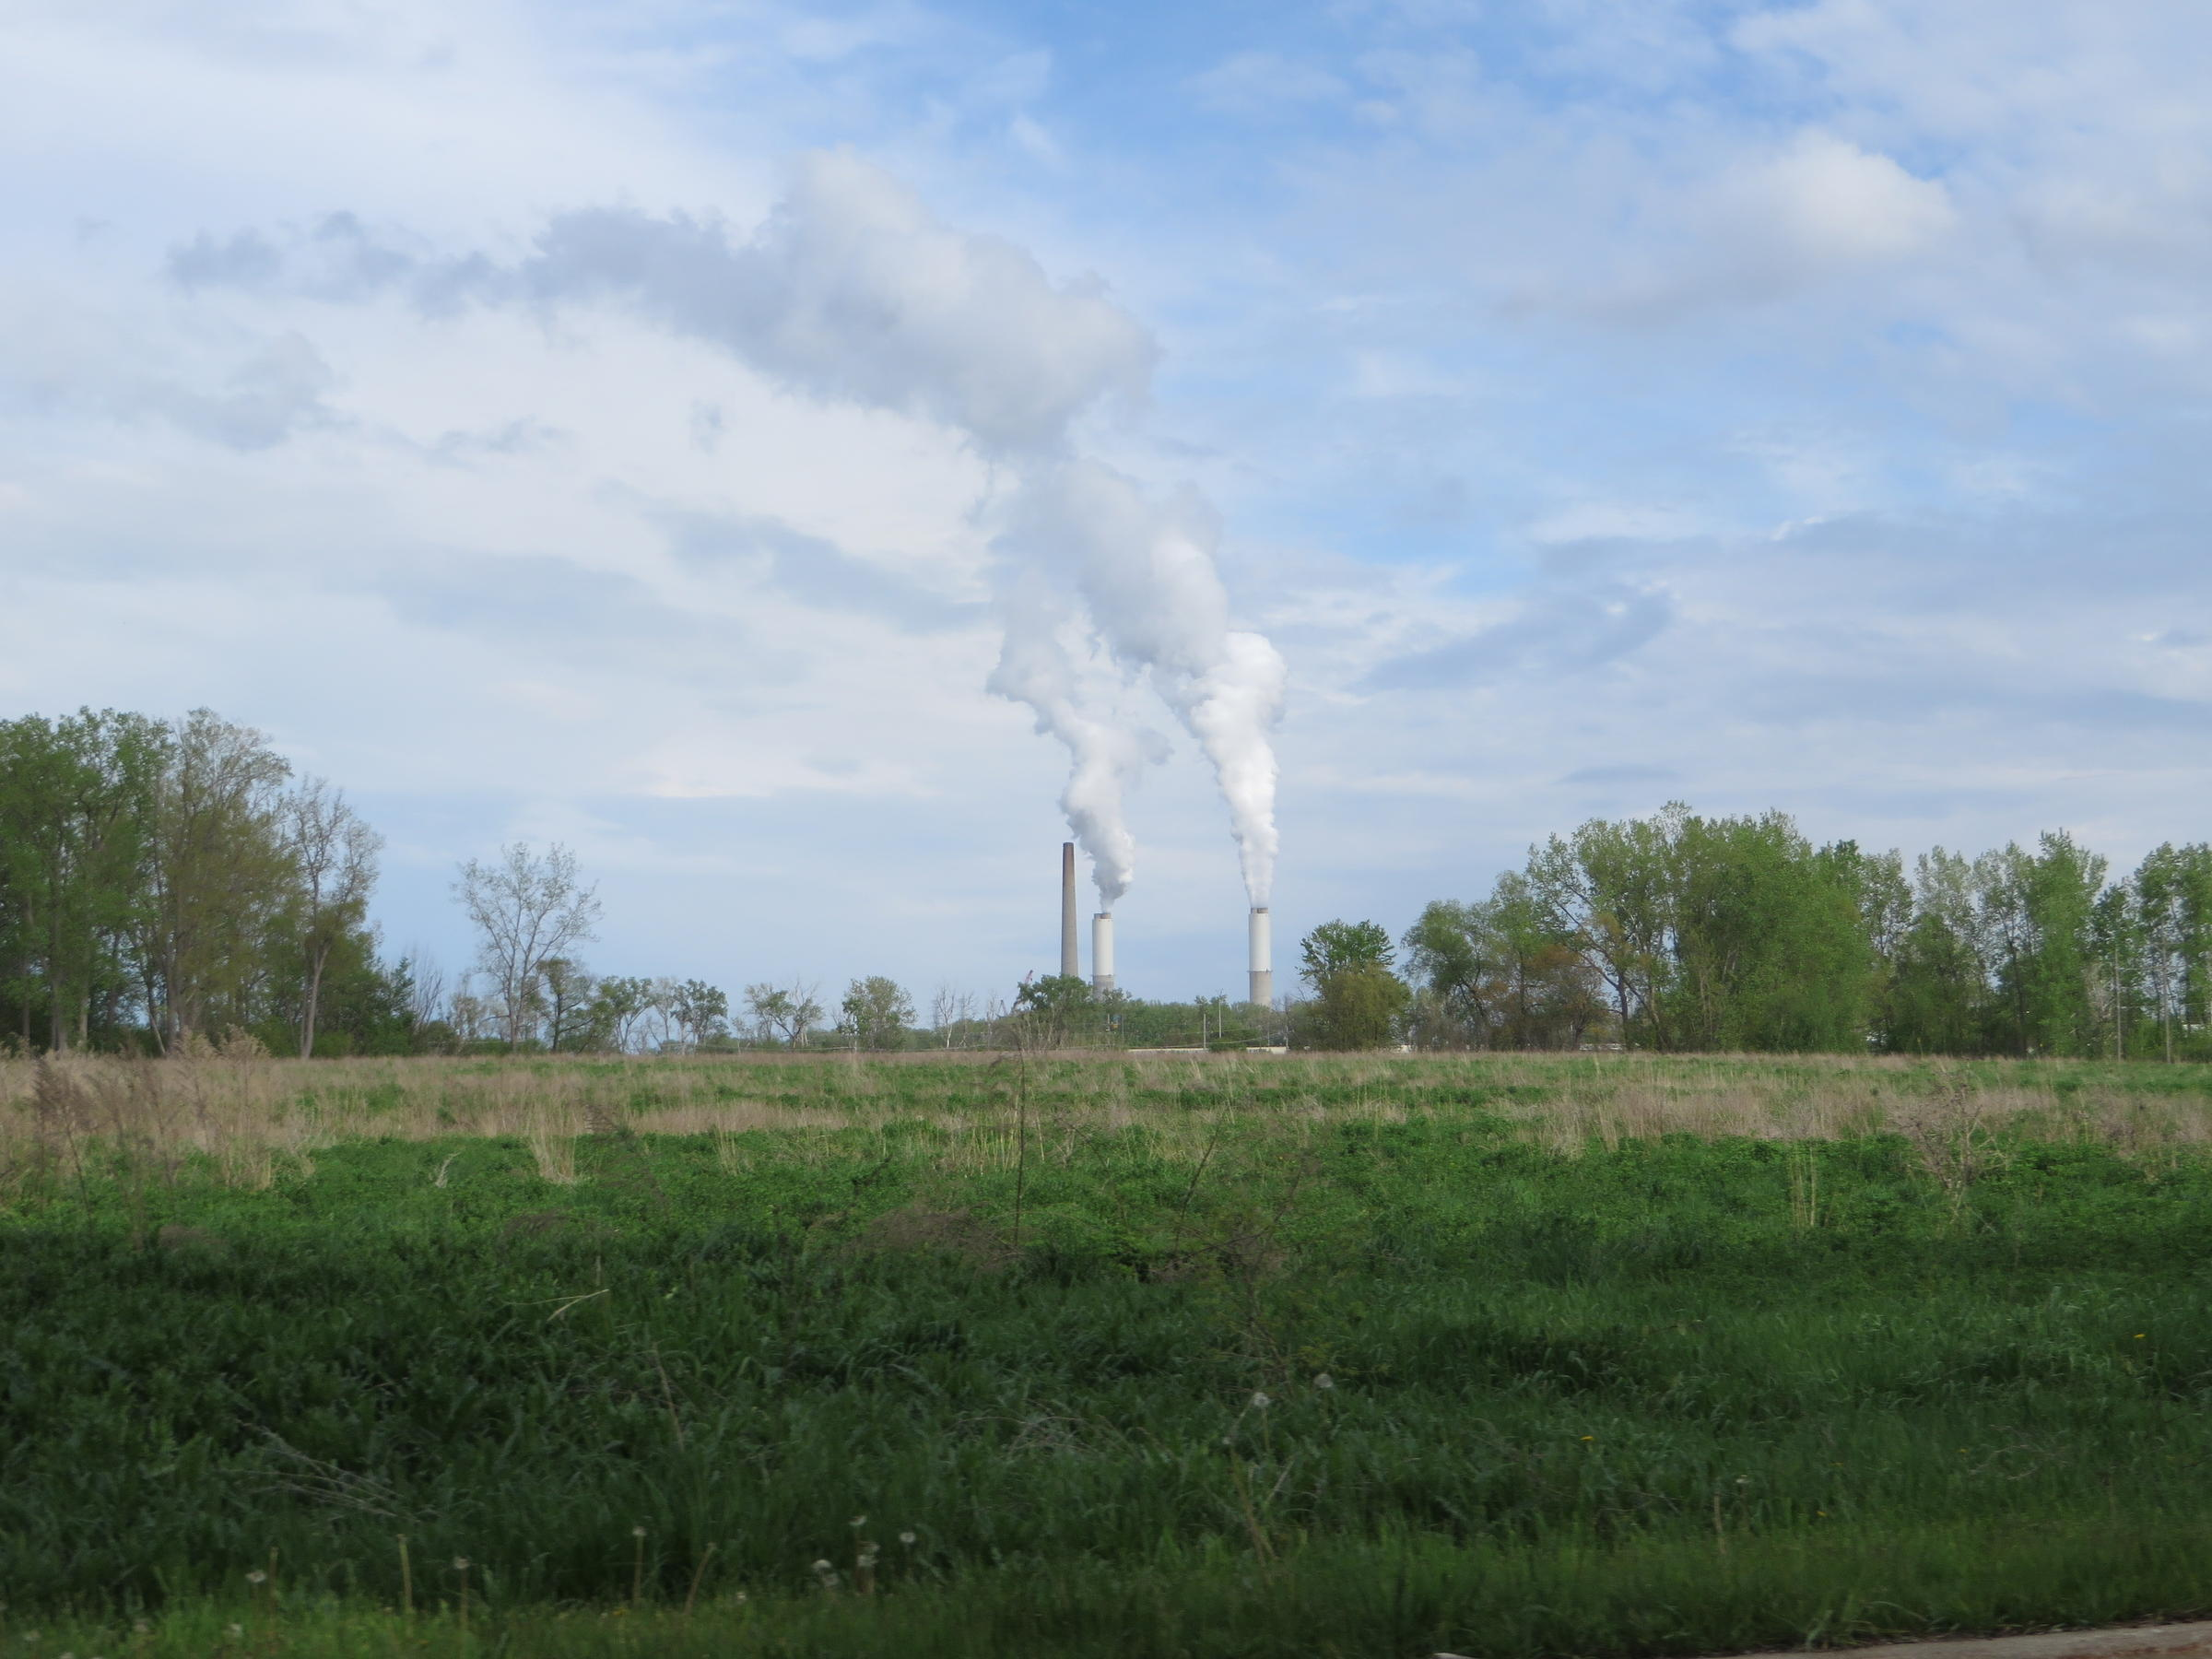 After Acquiring Appalachian Midstream Assets, DTE Plans NatGas Power Plants in MI